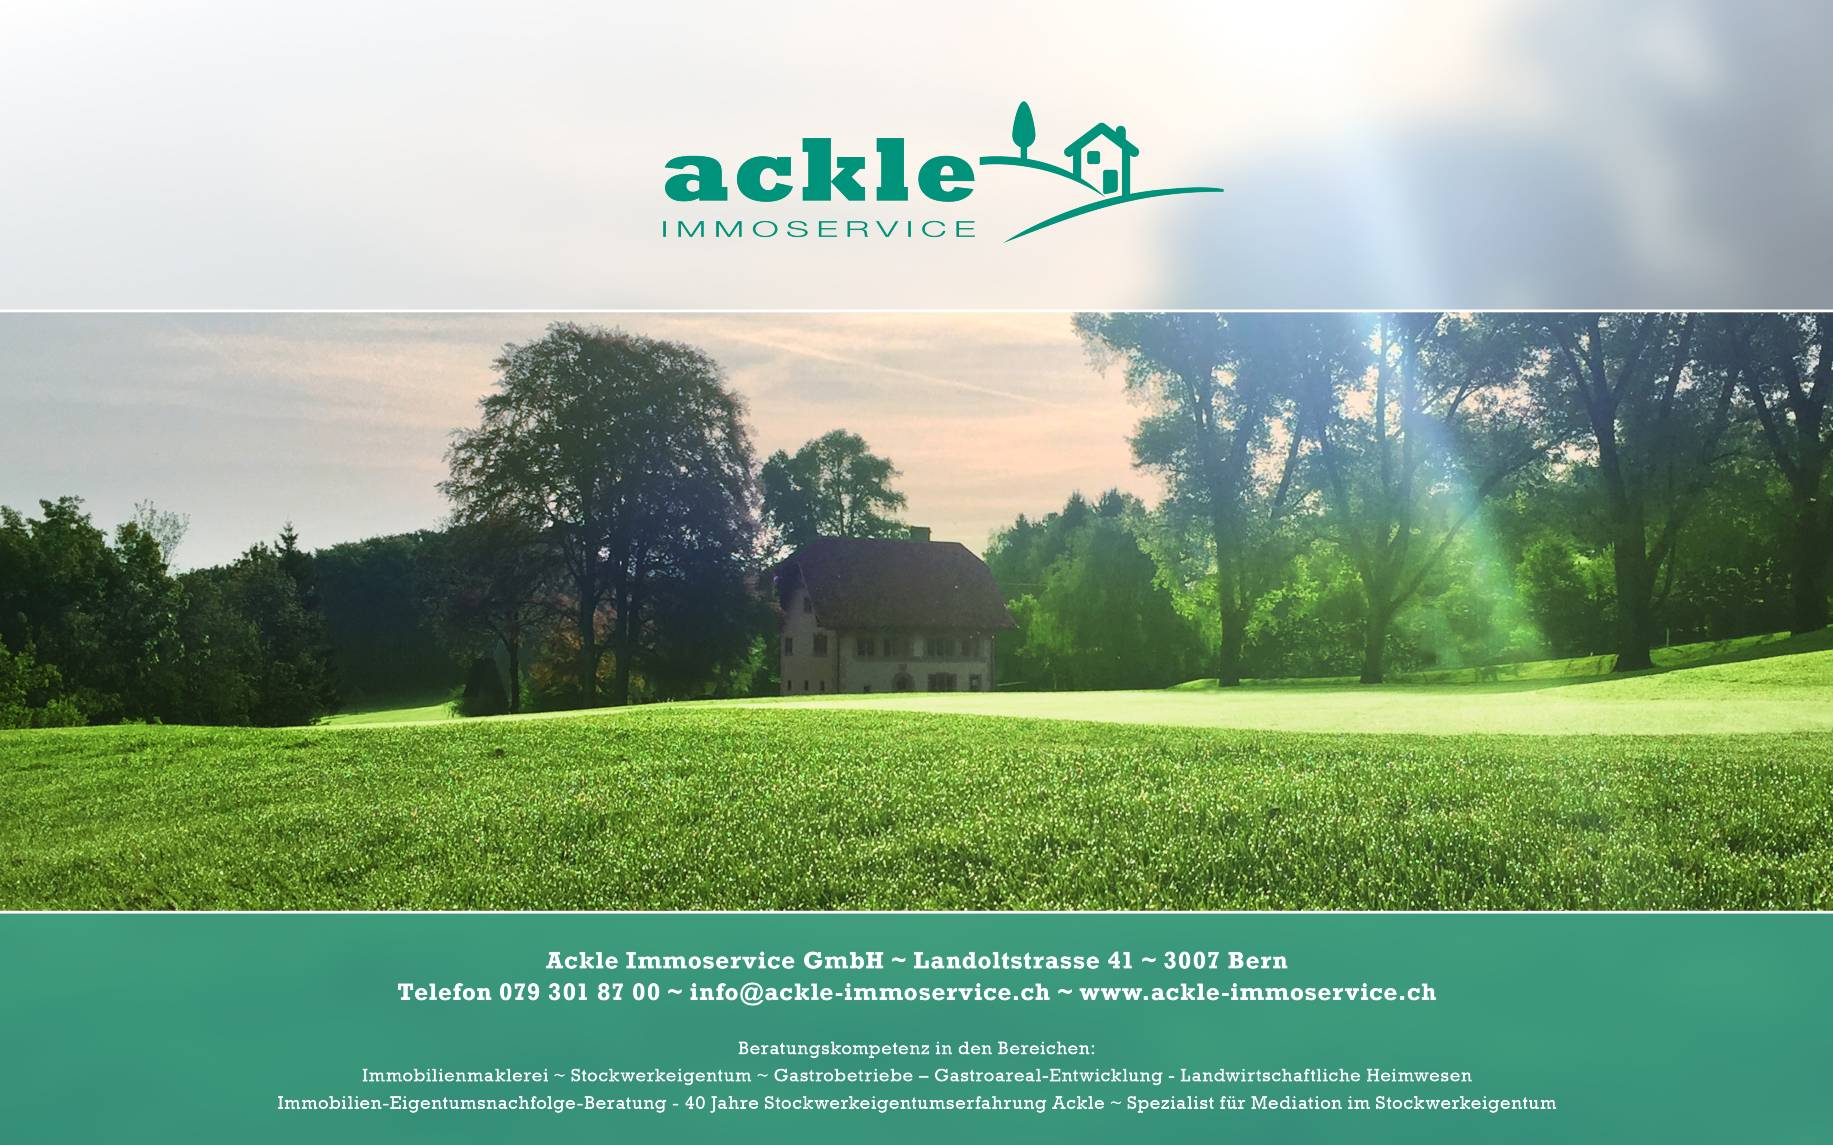 Ackle Immoservice GmbH